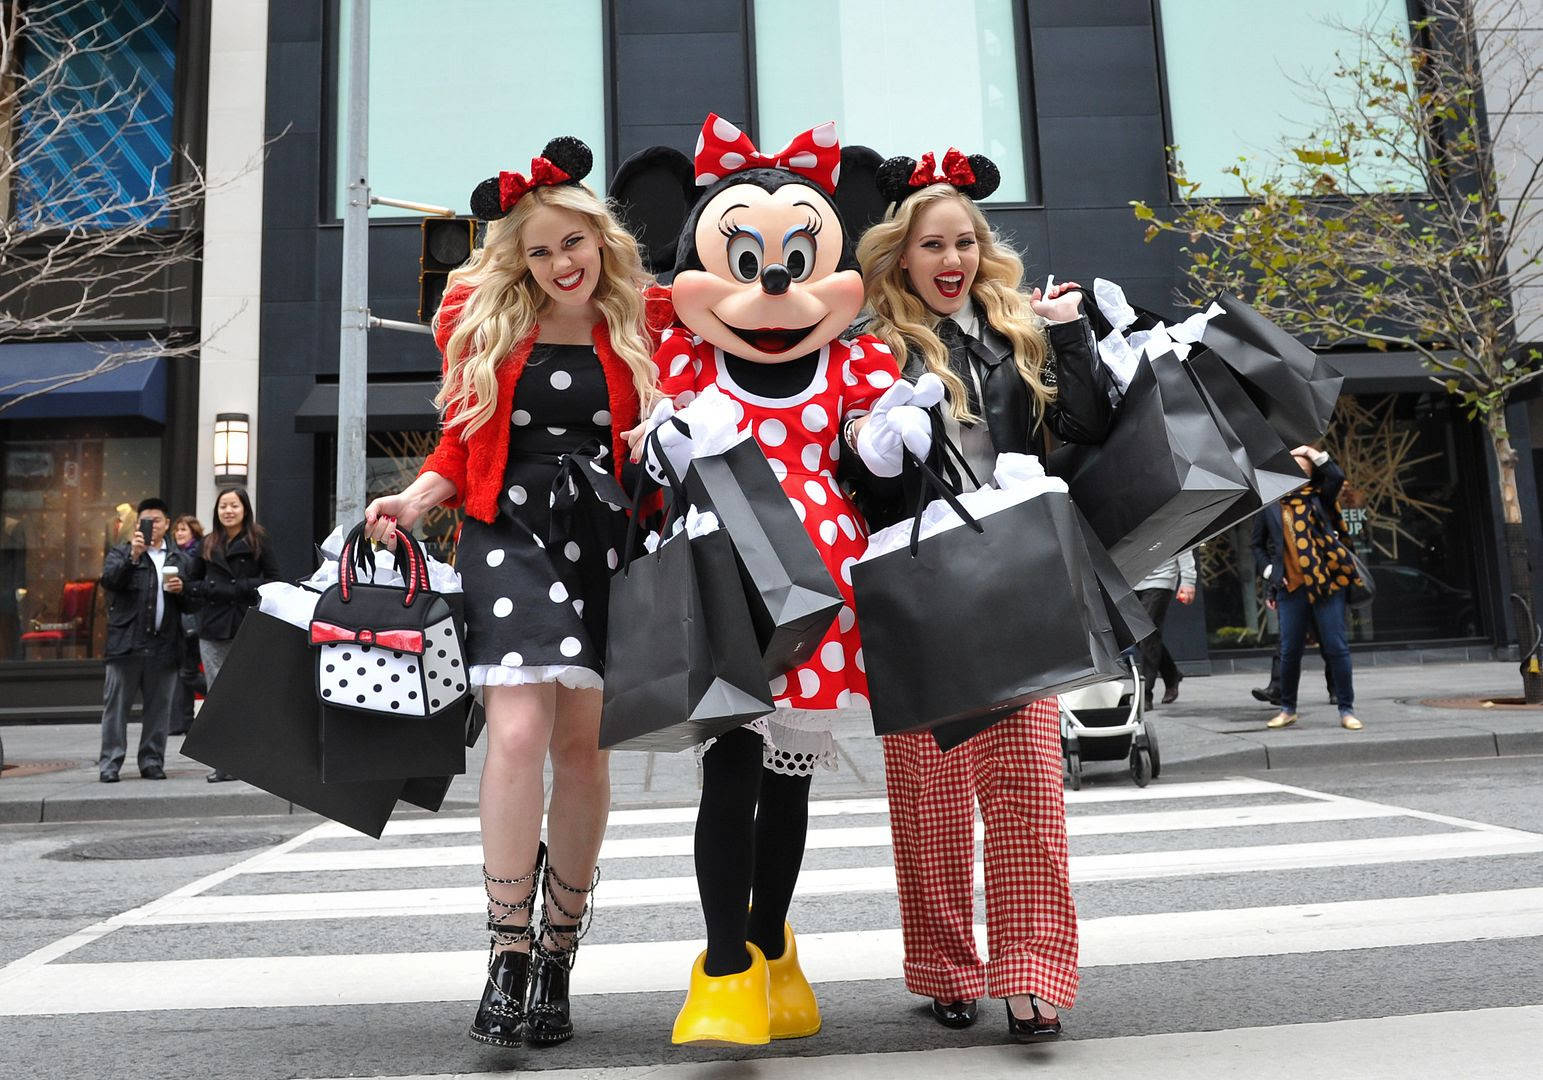 photo minniestyle-minniemouse-disney-beckermanblog-cailliandsambeckerman-disney-worldmastercardfashionweek-toronto-13_zpsc794e5f7.jpg